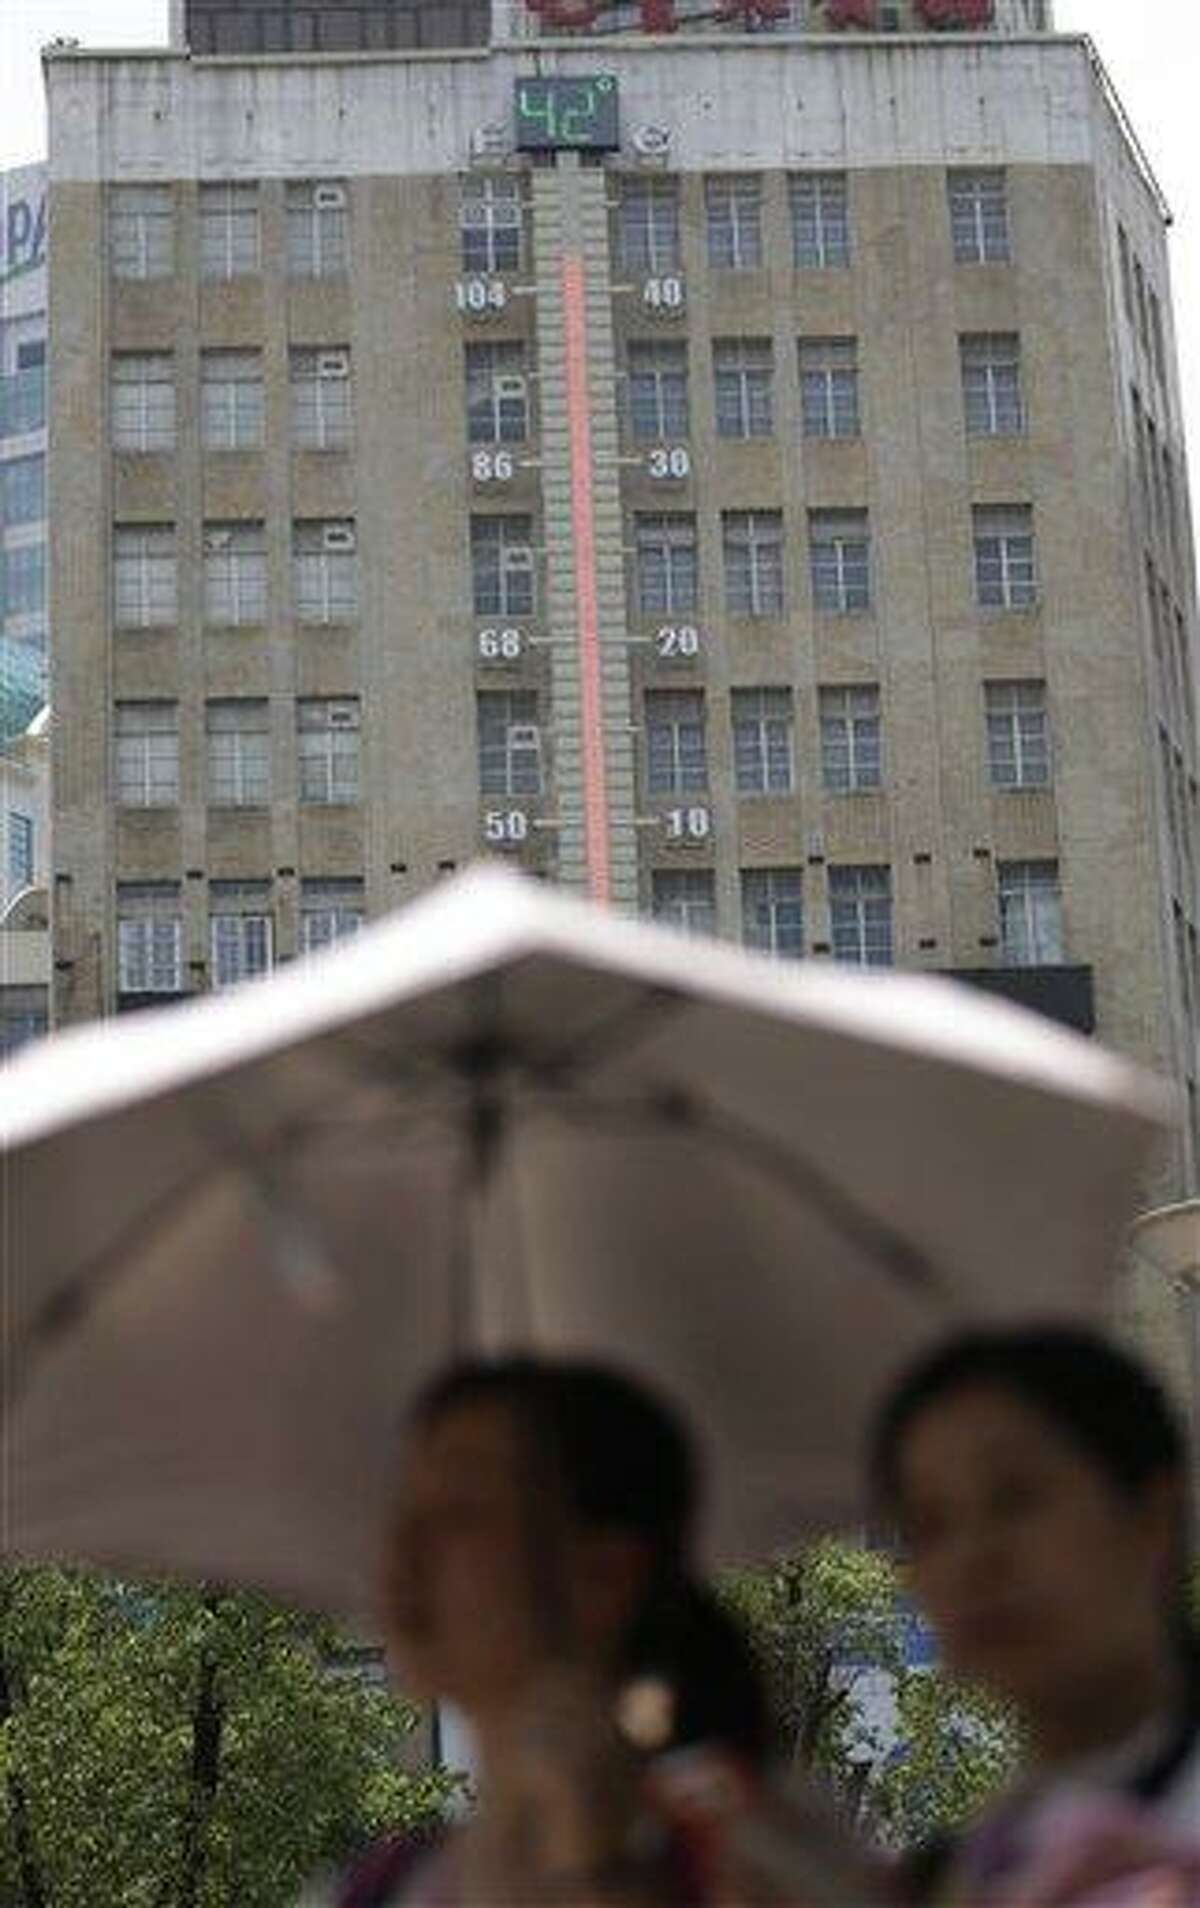 Women walk near a giant thermometer on the building which indicates the current highest temperature in Shanghai, China, Thursday, Aug. 1, 2013. Hot weather has set in with temperatures rising up to 40 degrees Celsius (104 degrees Fahrenheit) in Shanghai. (AP Photo/Eugene Hoshiko)